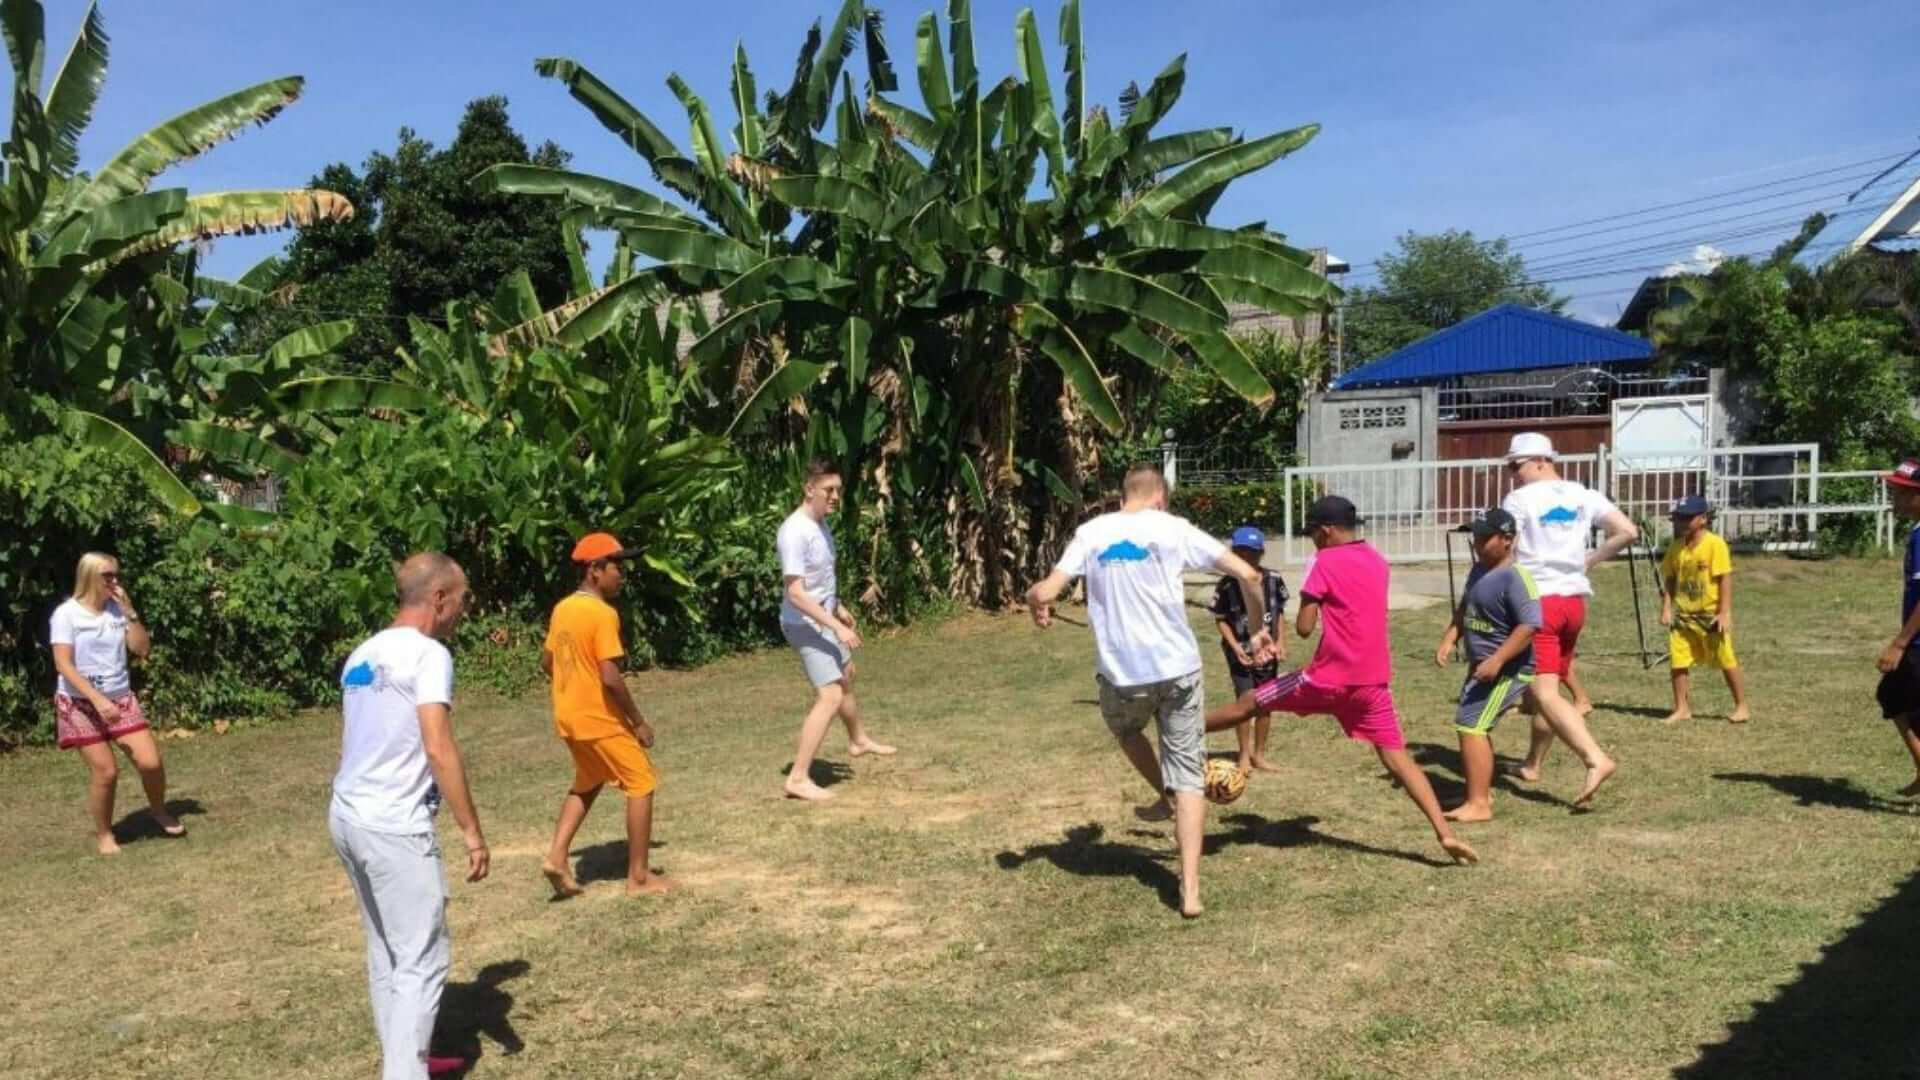 Students are playing soccer with Thai children in Phuket.